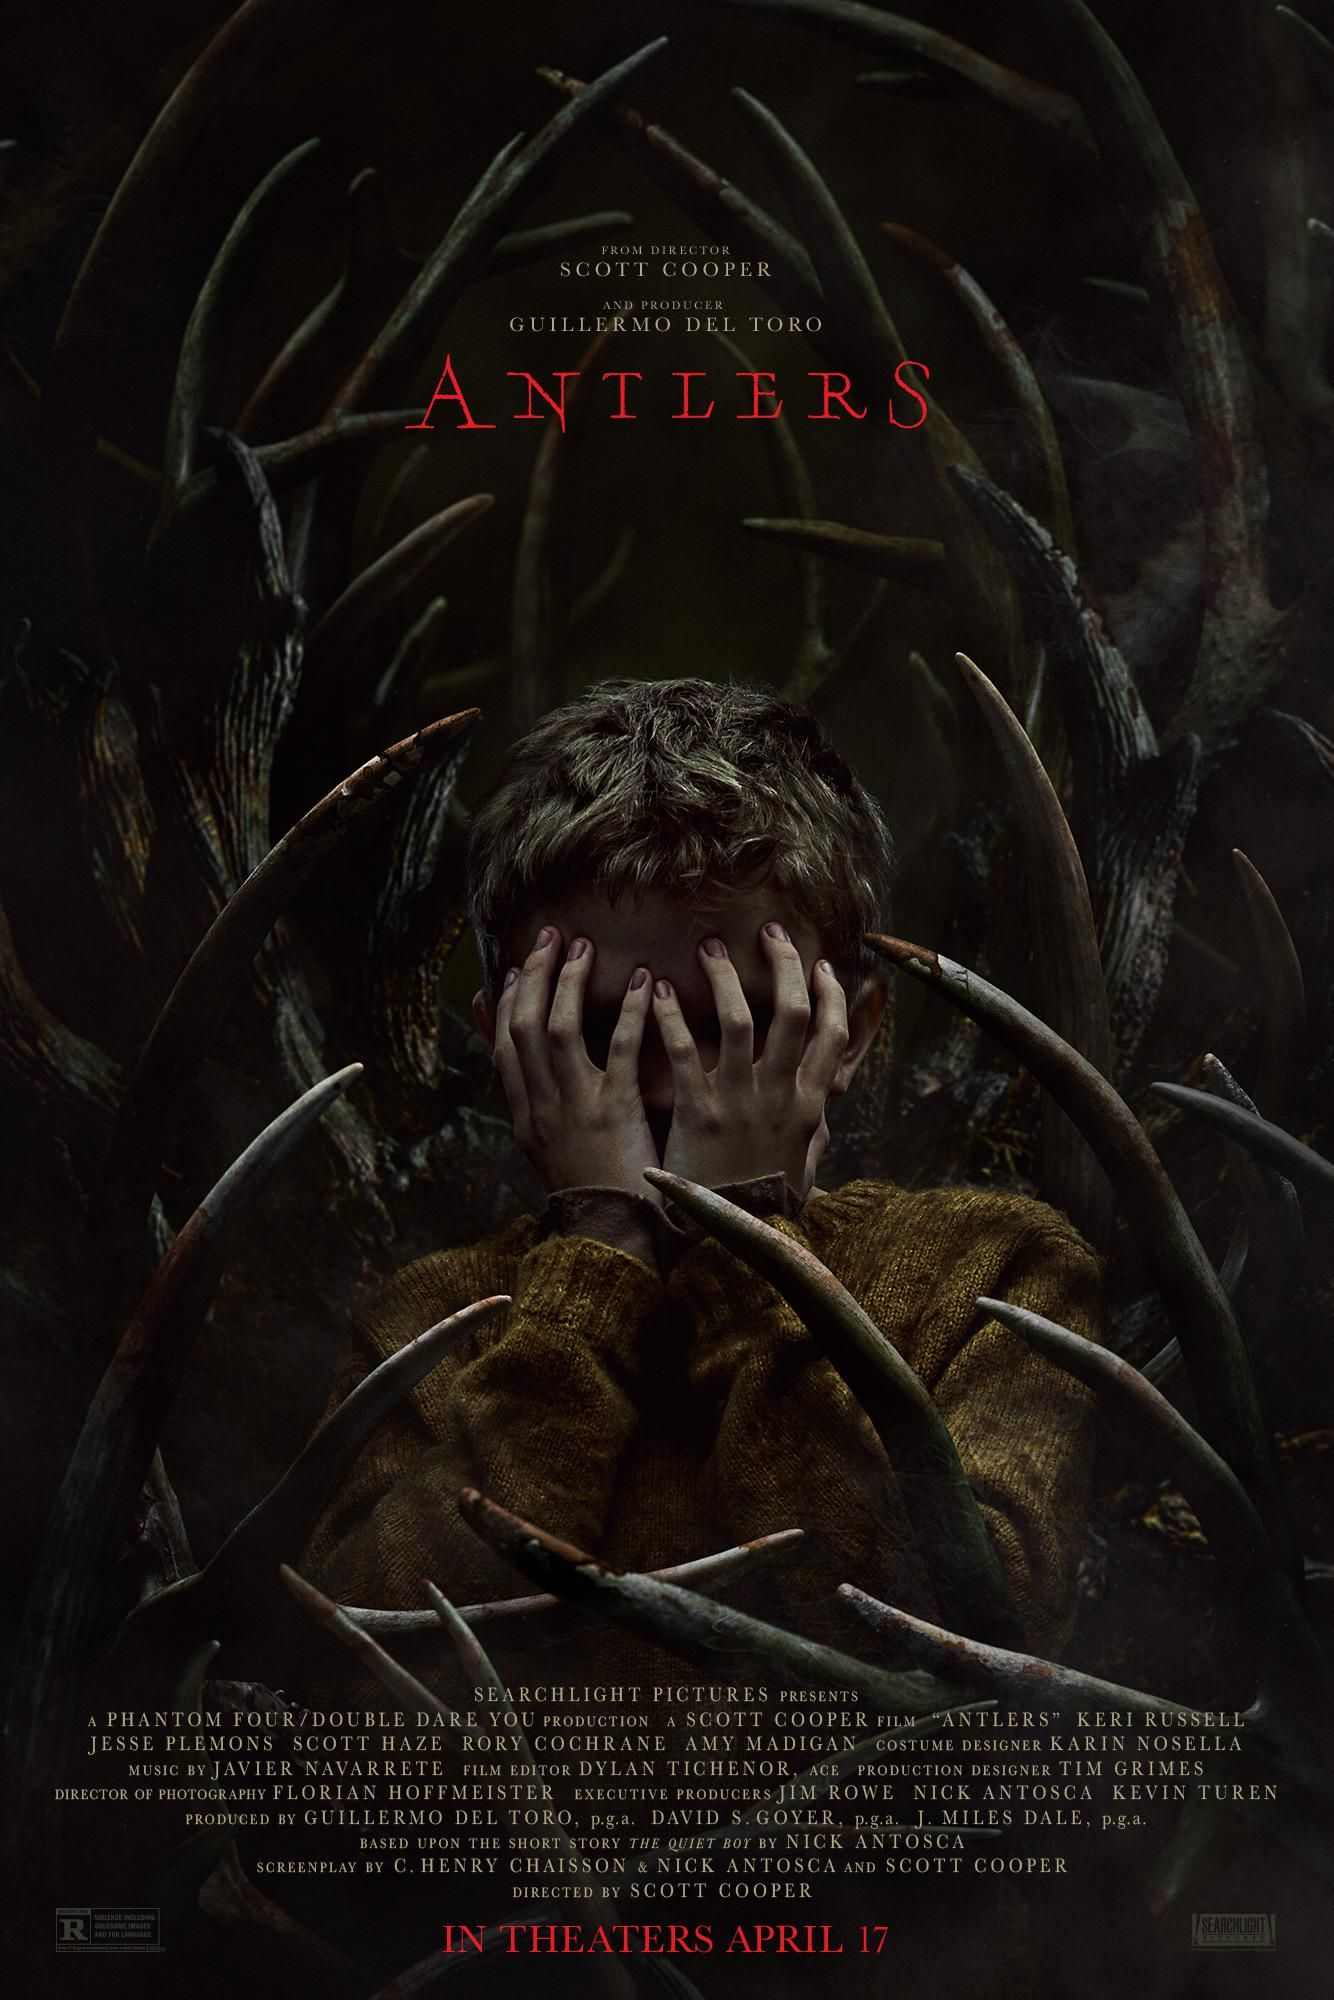 Extremely hyped for Antlers. Amazing poster unlike 2020s